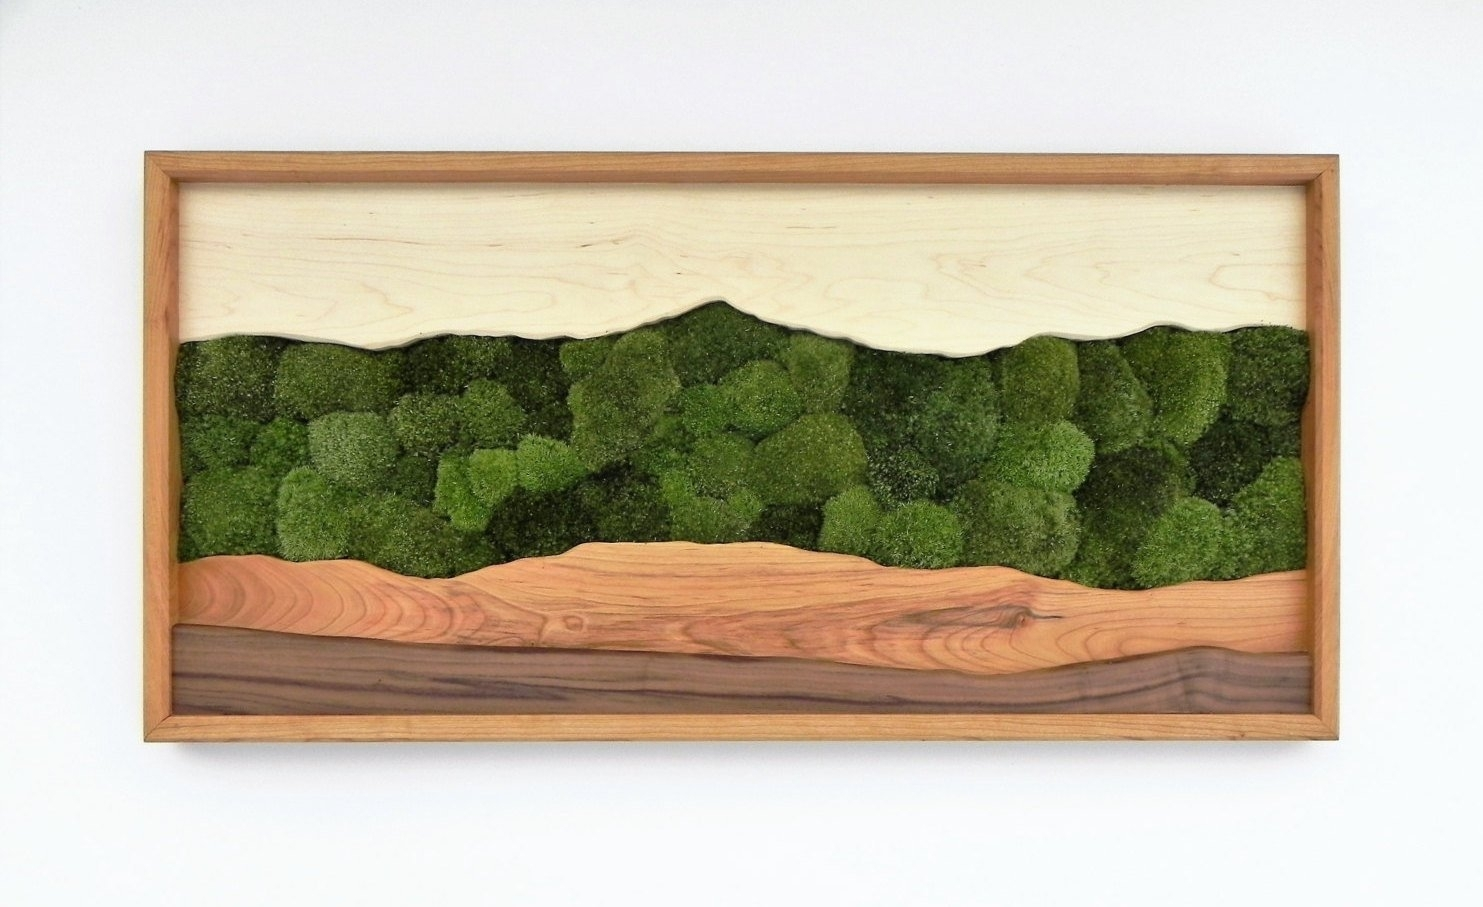 Green Mountain Moss Wall Art /sugar Maple, Cherry, Walnut, Preserved Intended For Latest Green Wall Art (View 9 of 20)